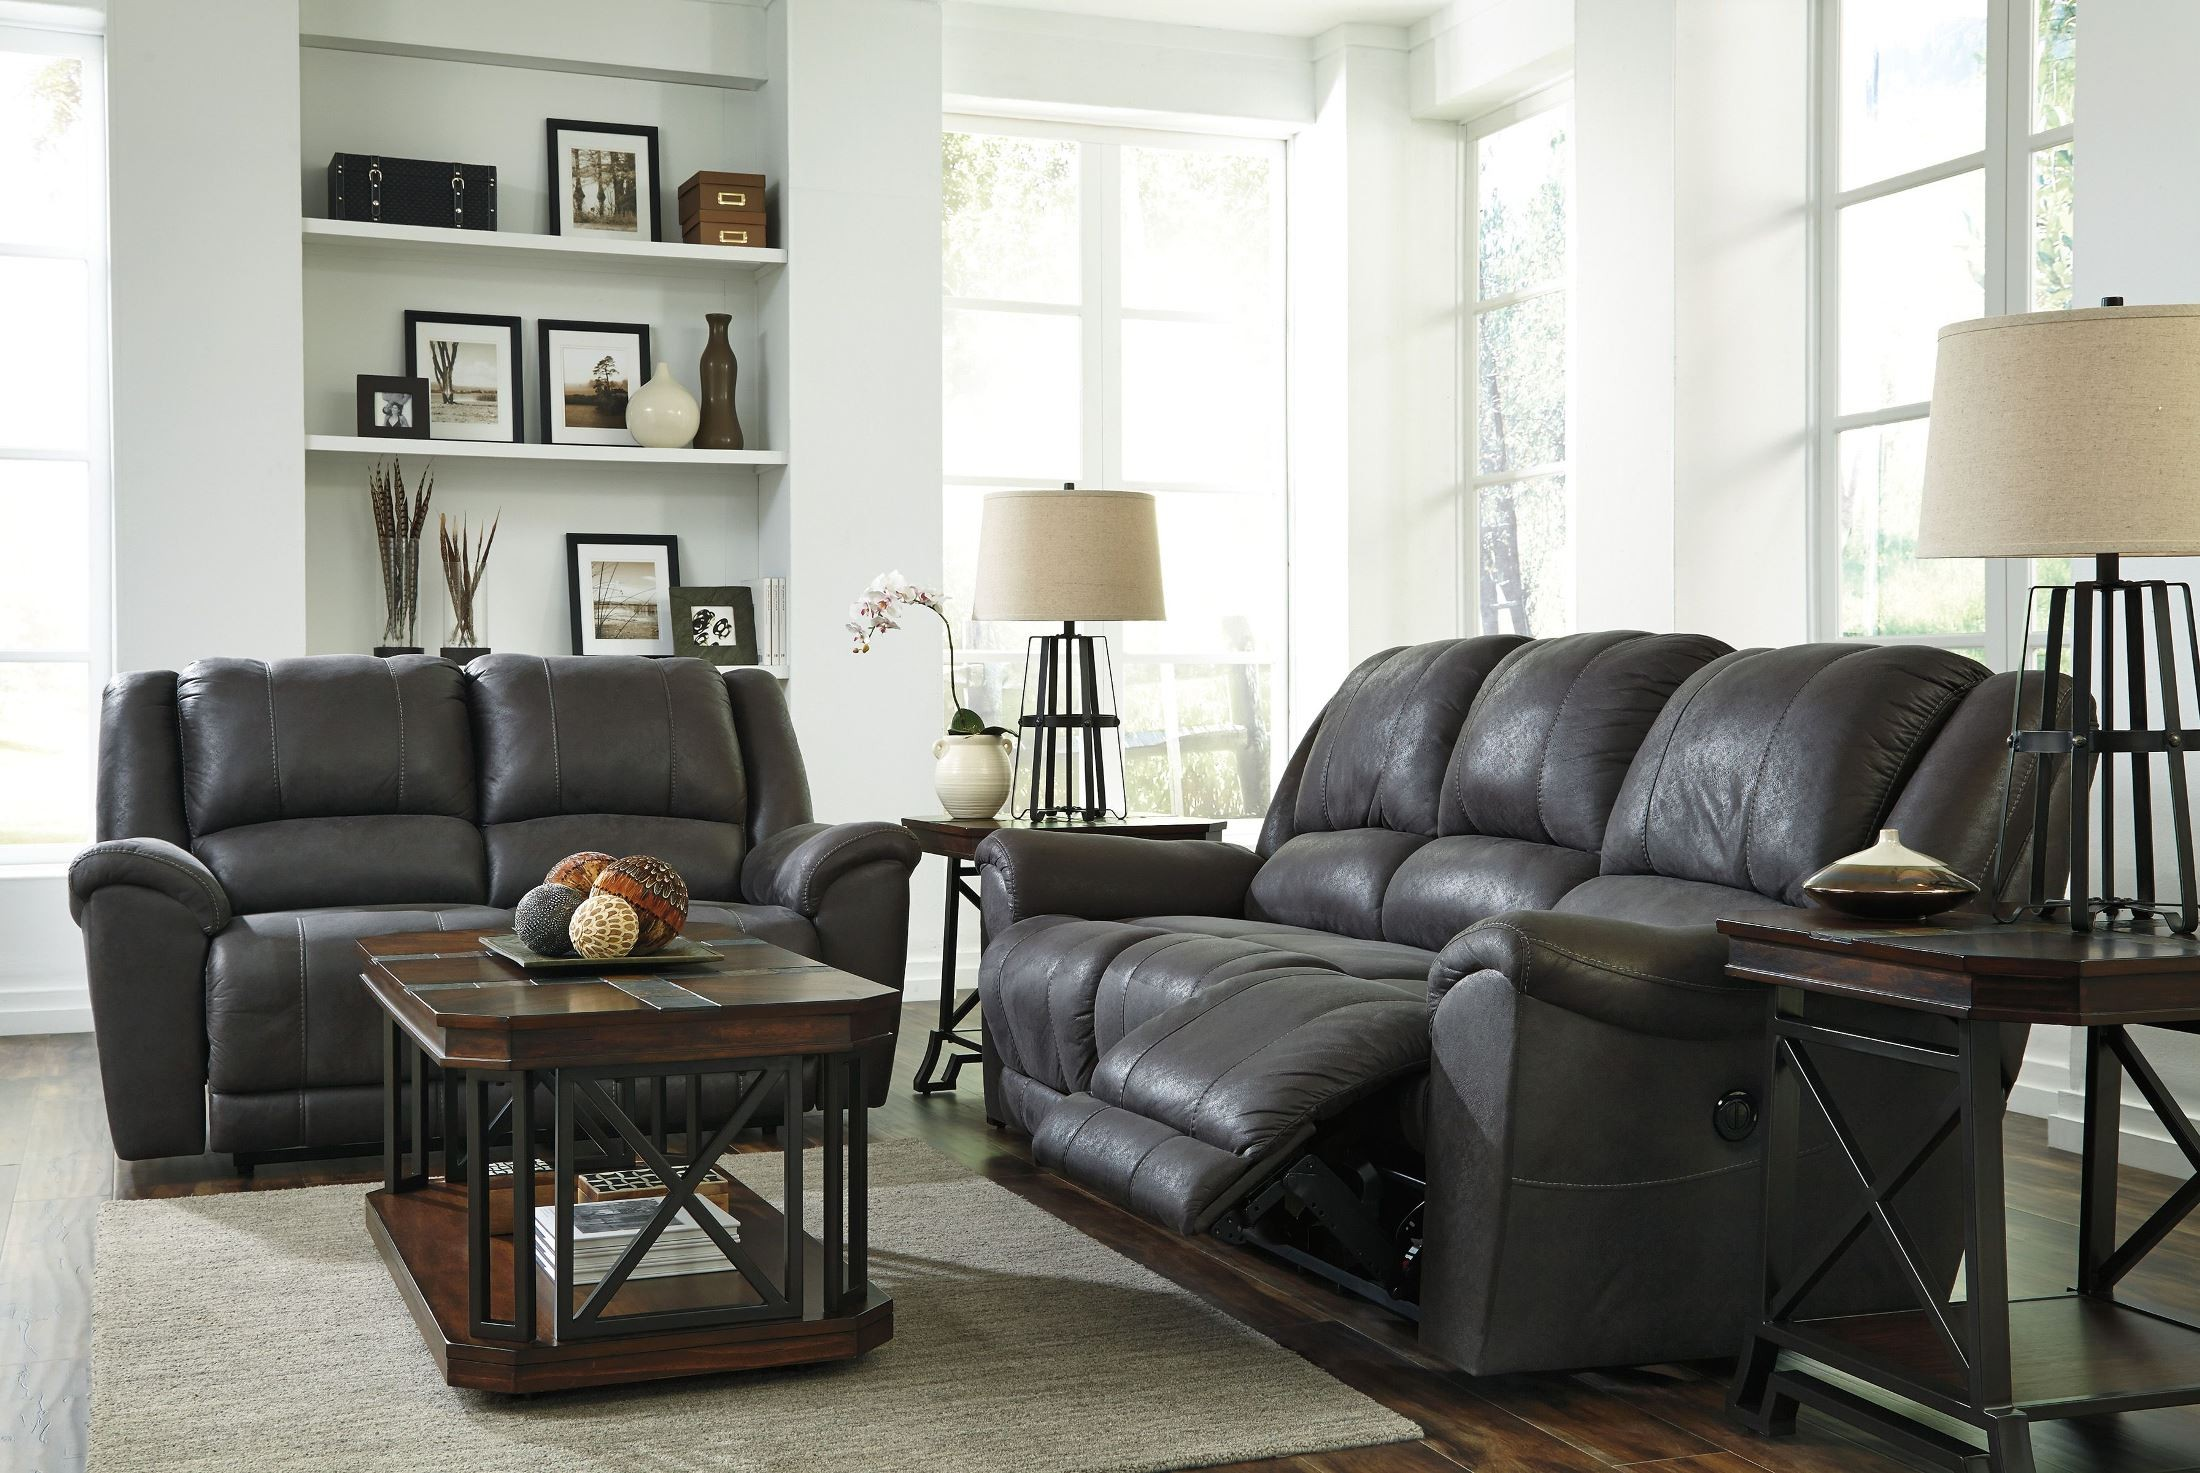 Gray Living Room Furniture Sets : Niarobi Gray Reclining Living Room Set from Ashley ...